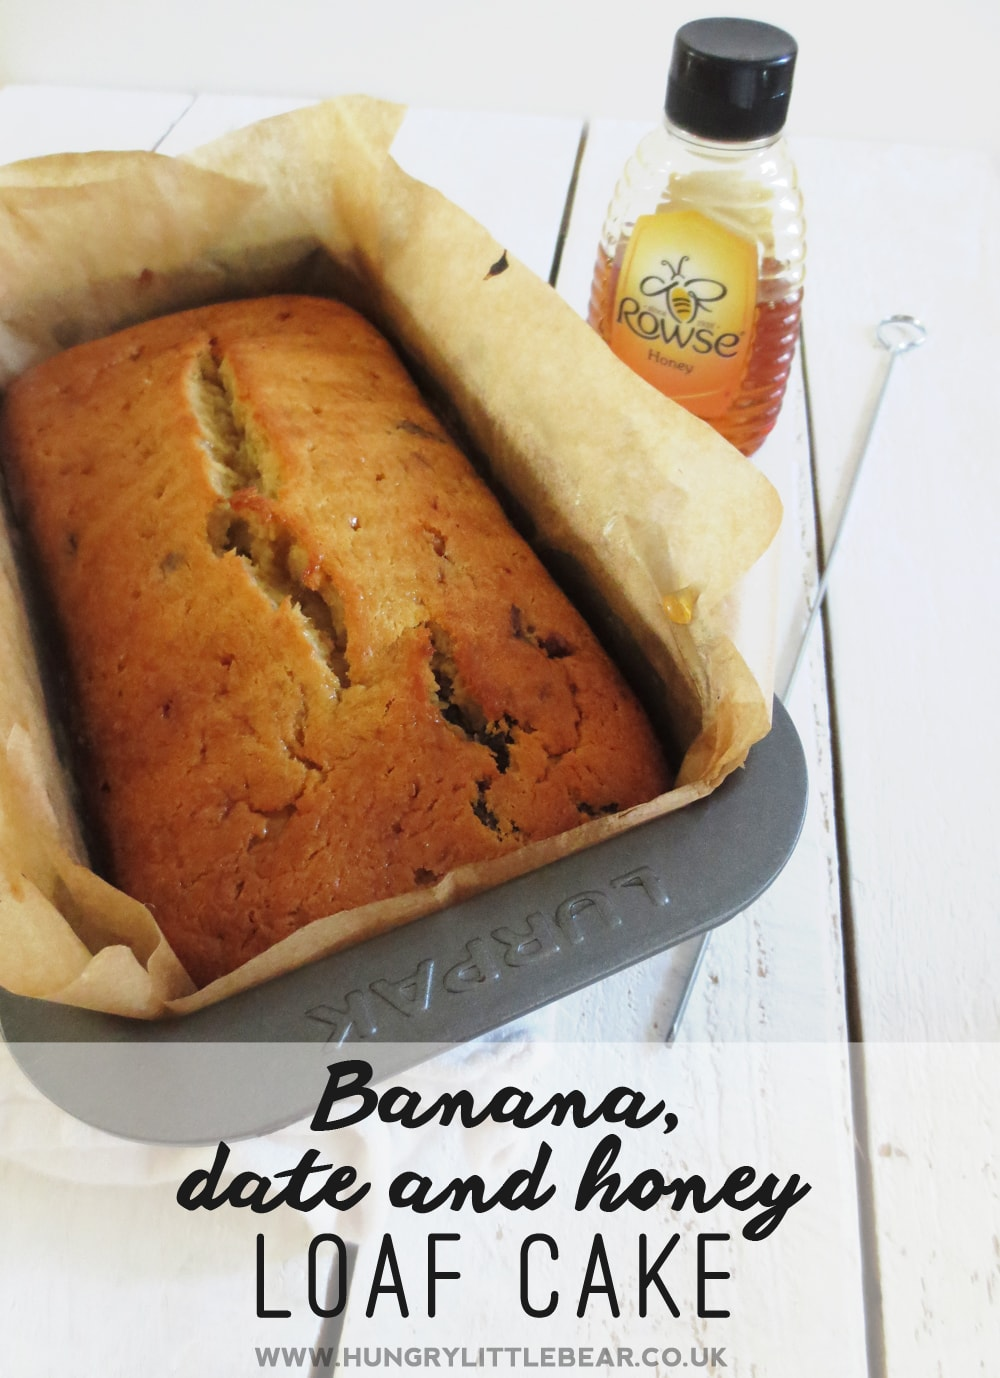 Banana Date and Honey Loaf Cake | www.hungrylittlebear.co.uk